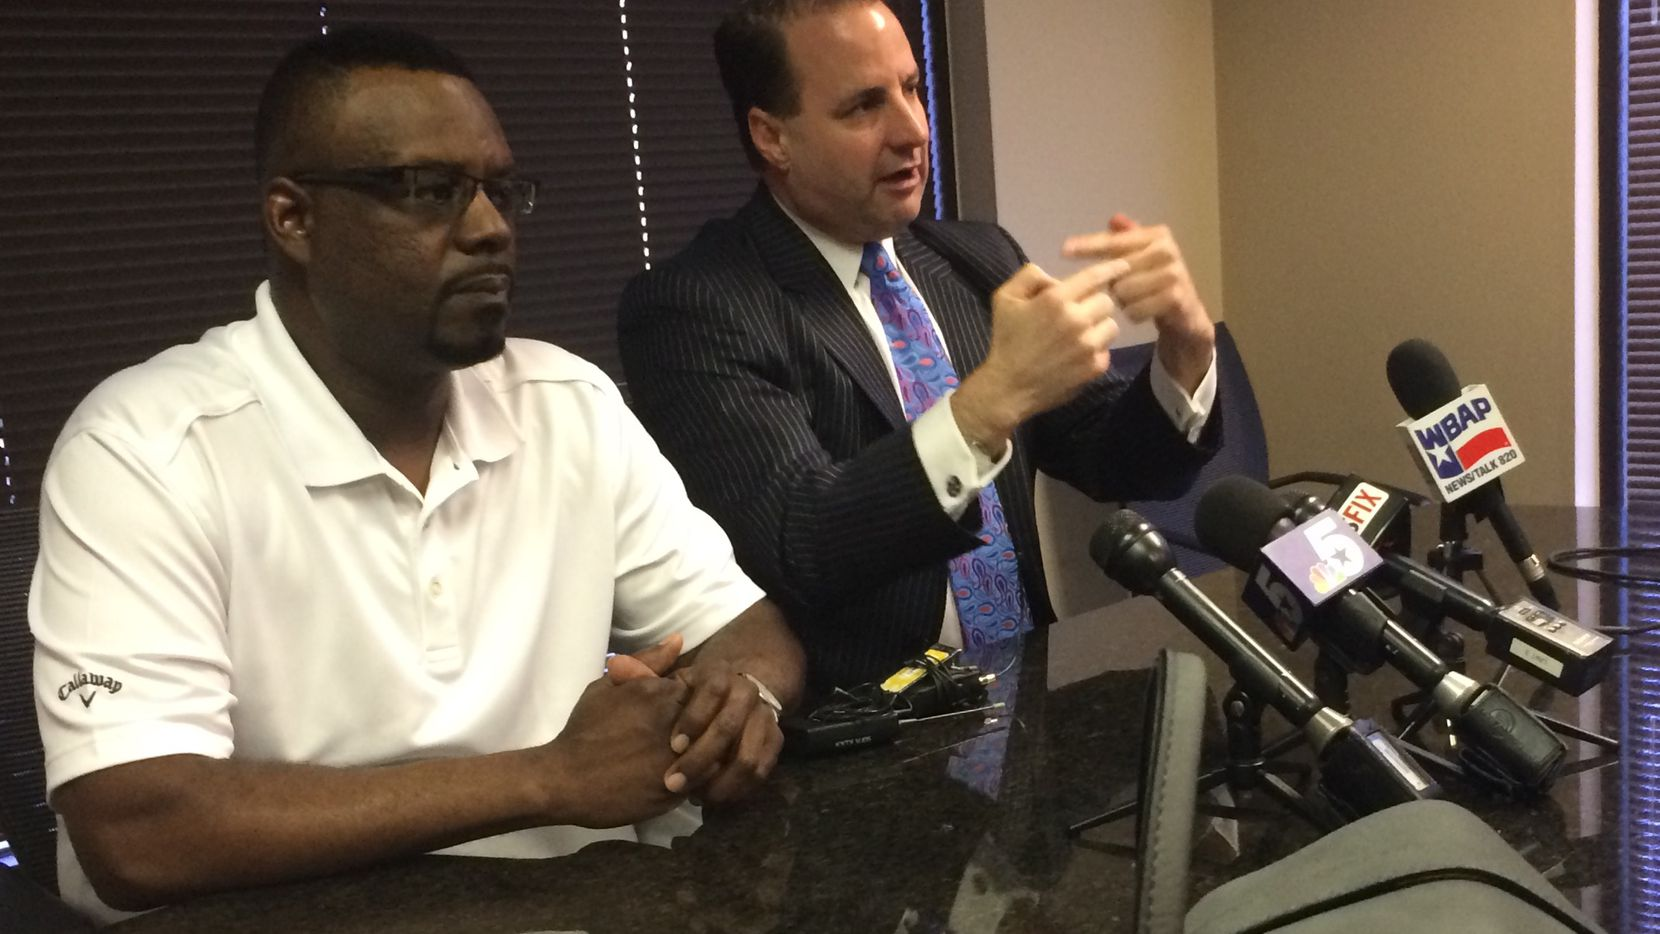 Sean Harrison, left, the older brother of mental patient Jason Harrison, who was shot and killed June 14, 2014, by Dallas police officers. Harrison speaks Monday, March 16, 2015, at a news conference with the family's attorney, Geoff Henley (right).